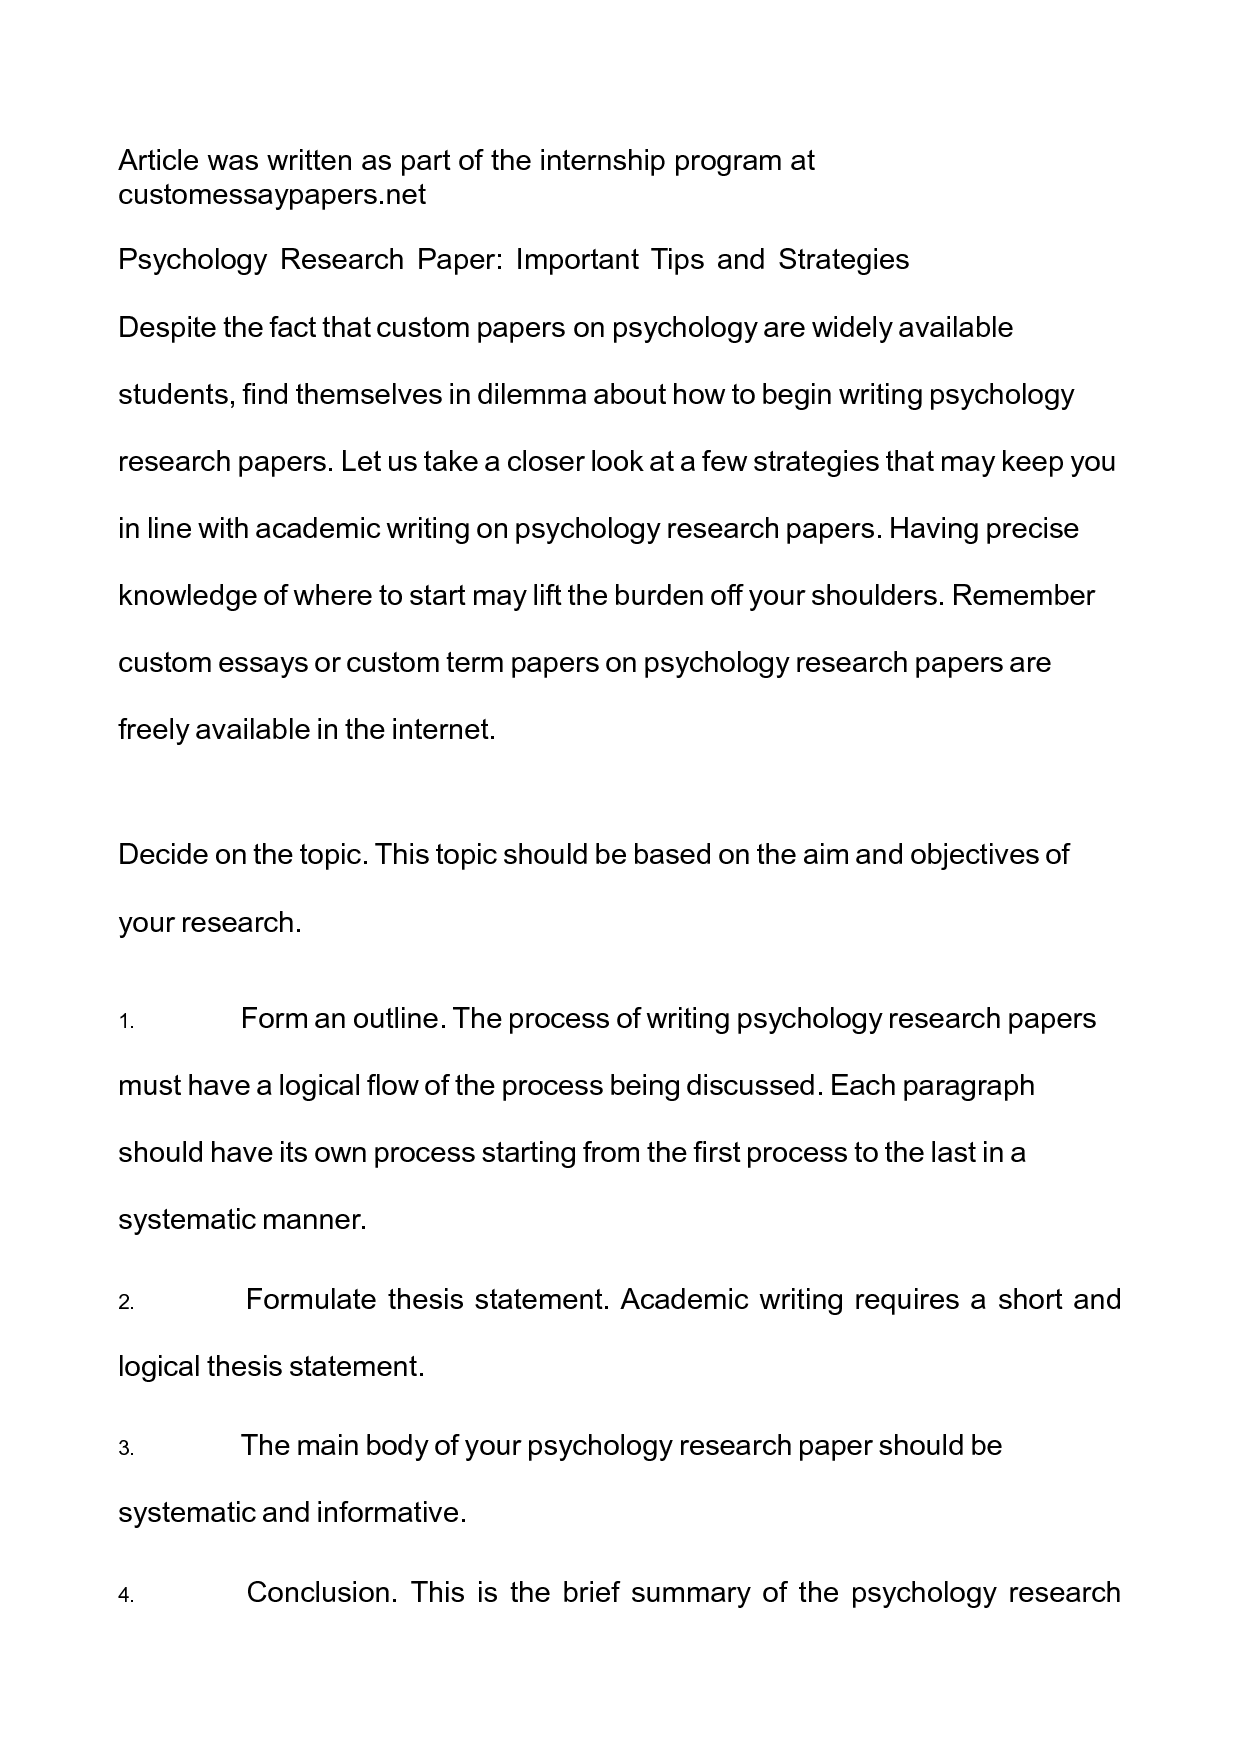 004 Psychology Research Paper Writing Services Wonderful On Free Forensic Pdf Topics Full